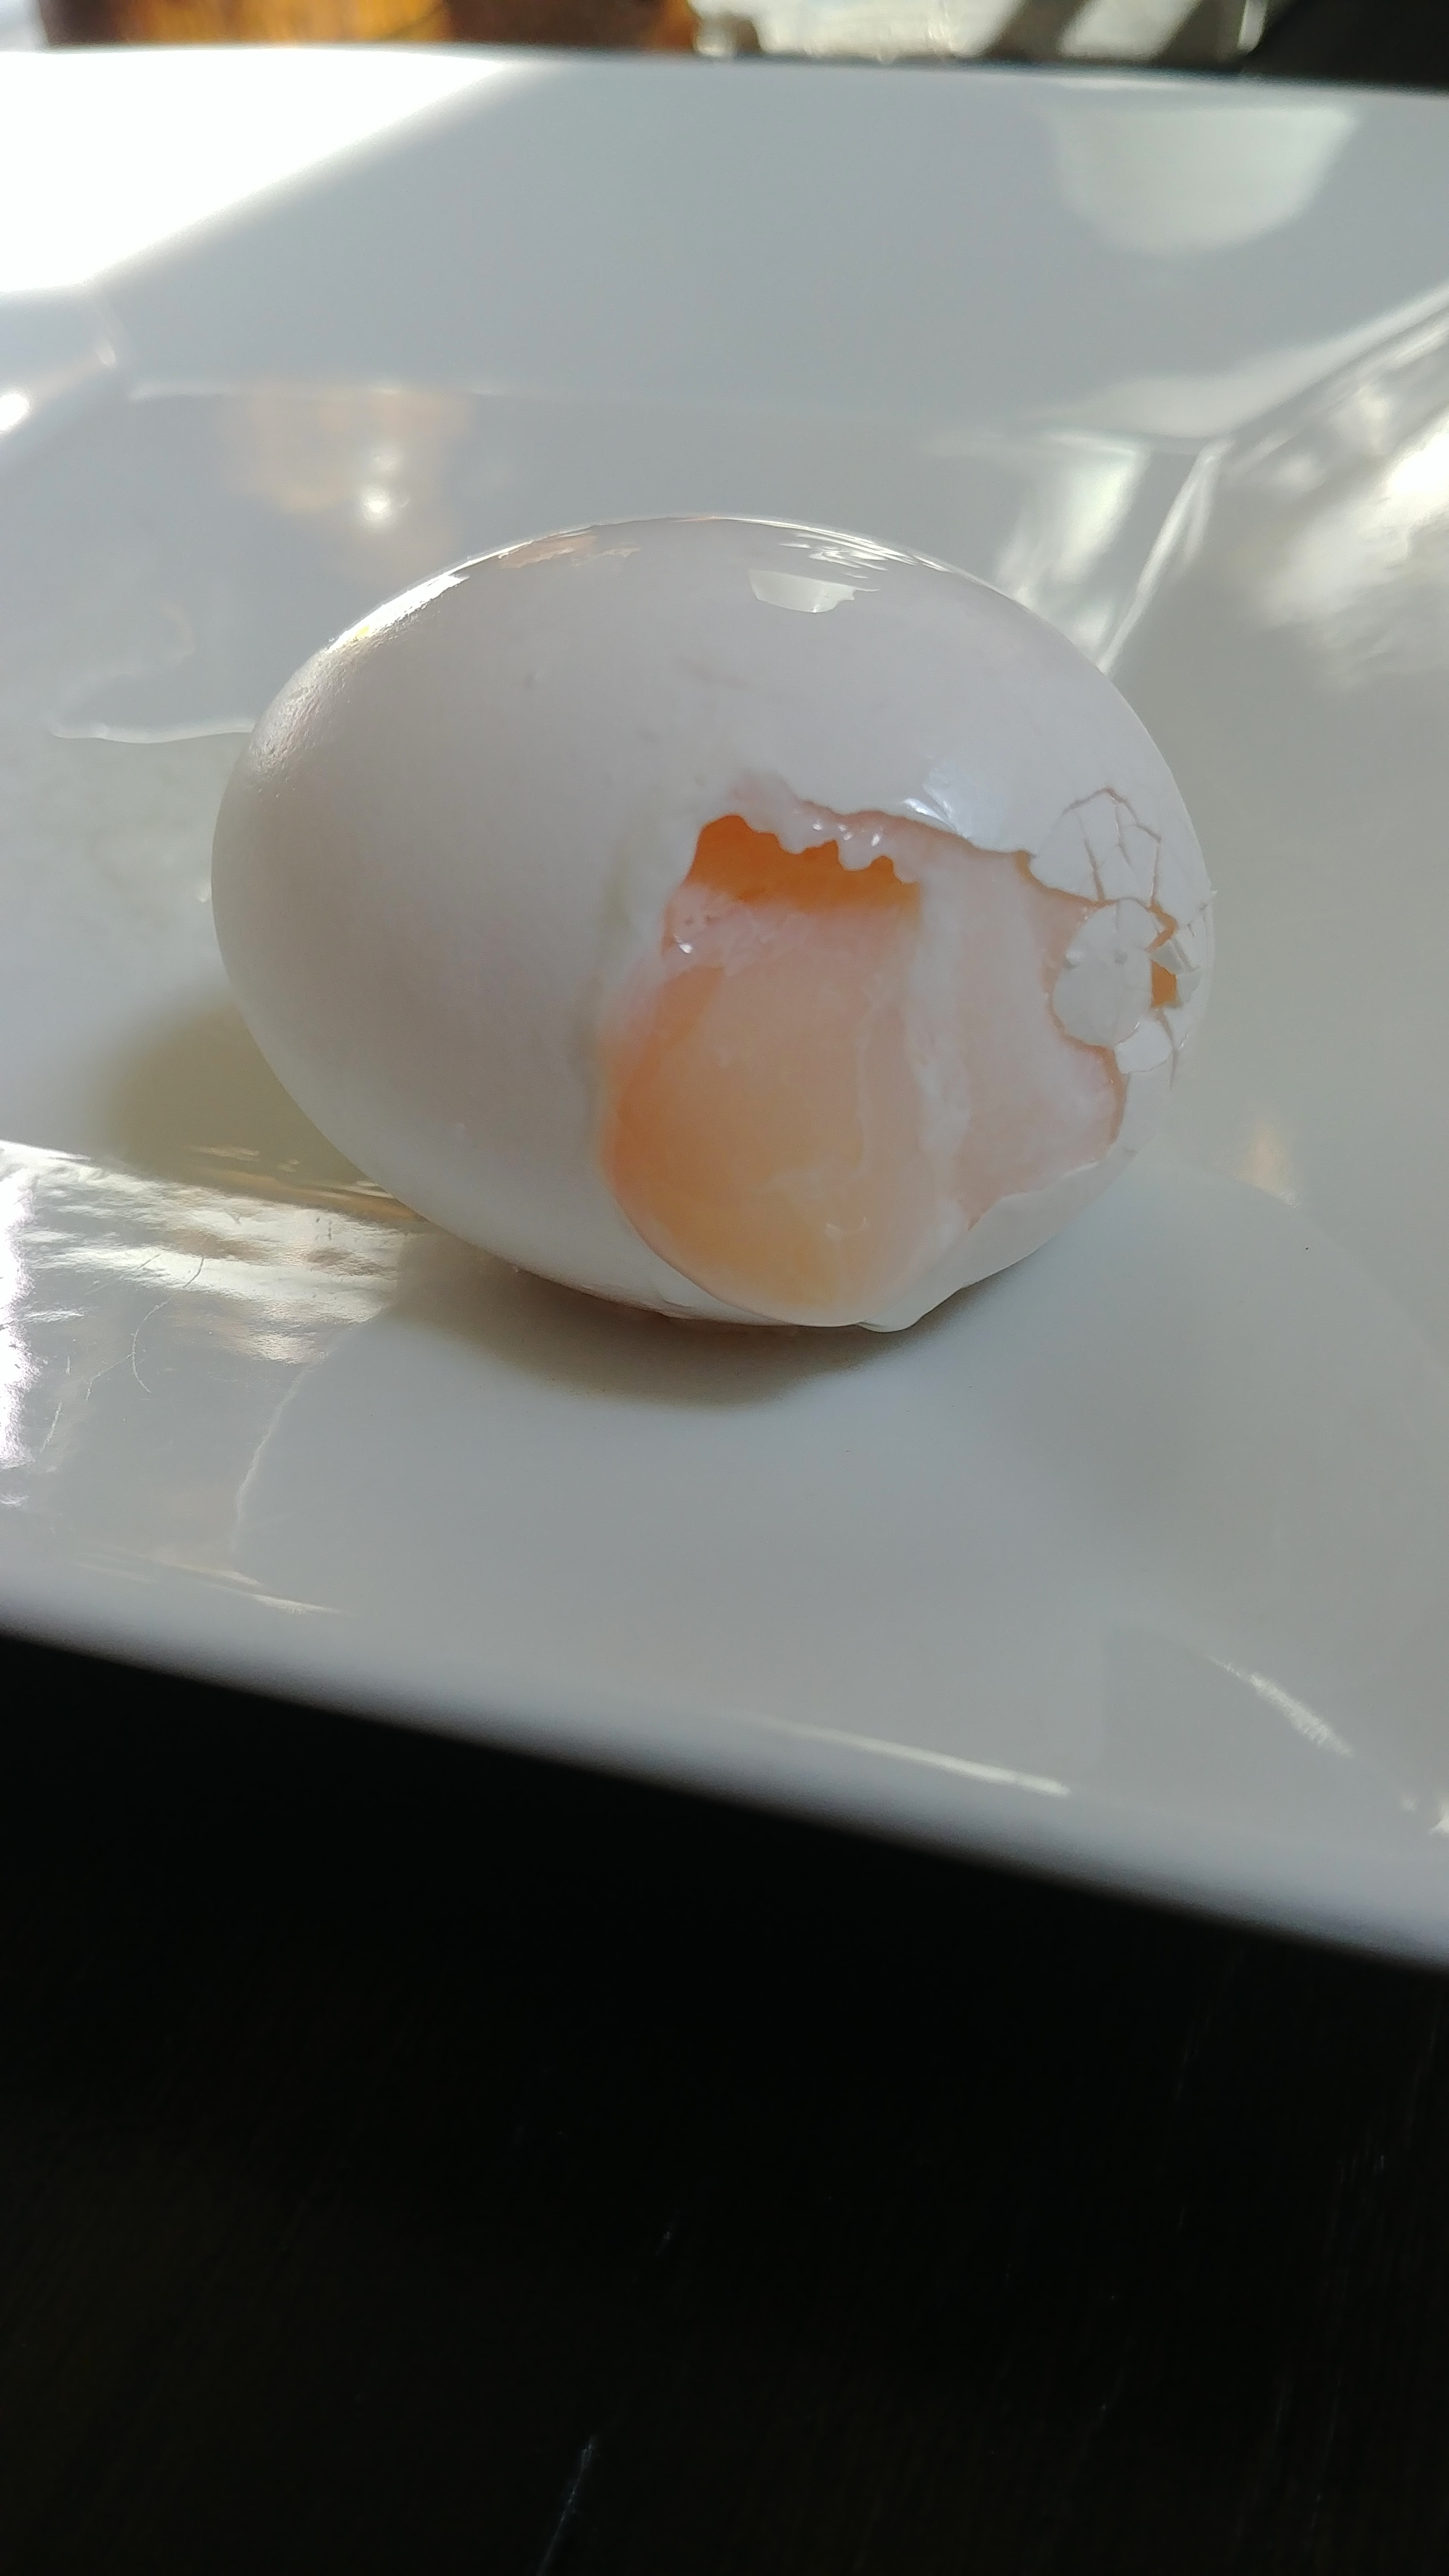 soft boiled eggs in the microwave